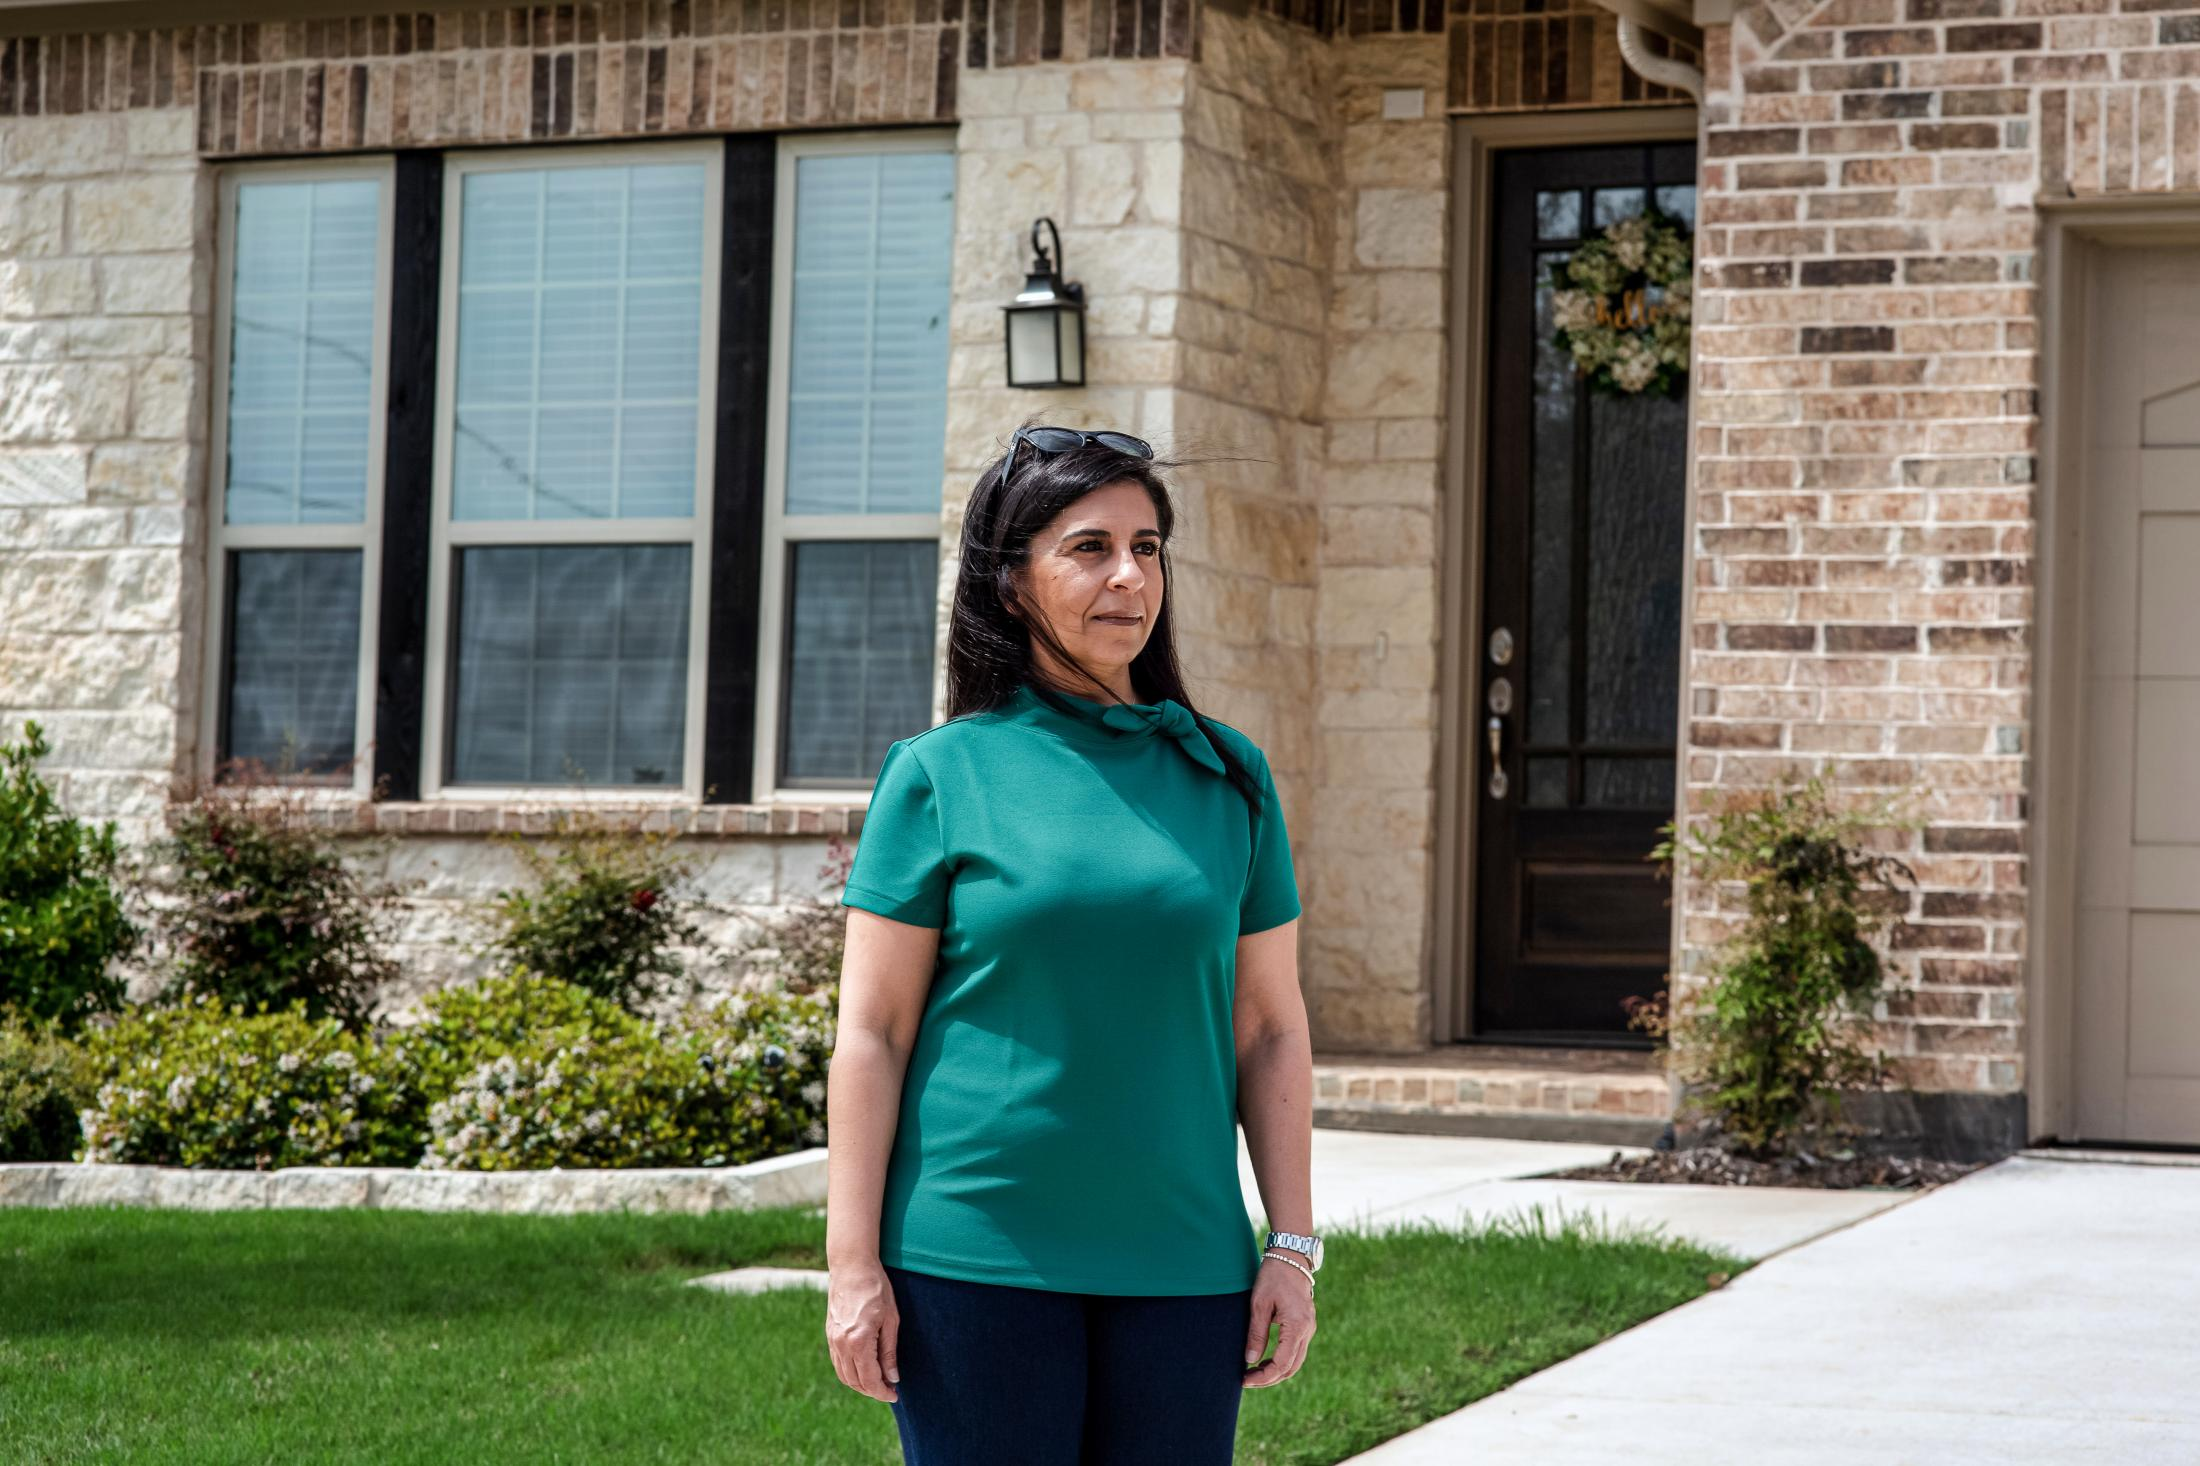 Sheilaf Farpour, I've started working from home for the past two weeks and have had no real human interaction. I leave my house for 30minutes a day for some fresh air. My boyfriend is in Atlanta, Georgia. I may drive to him to be with him.